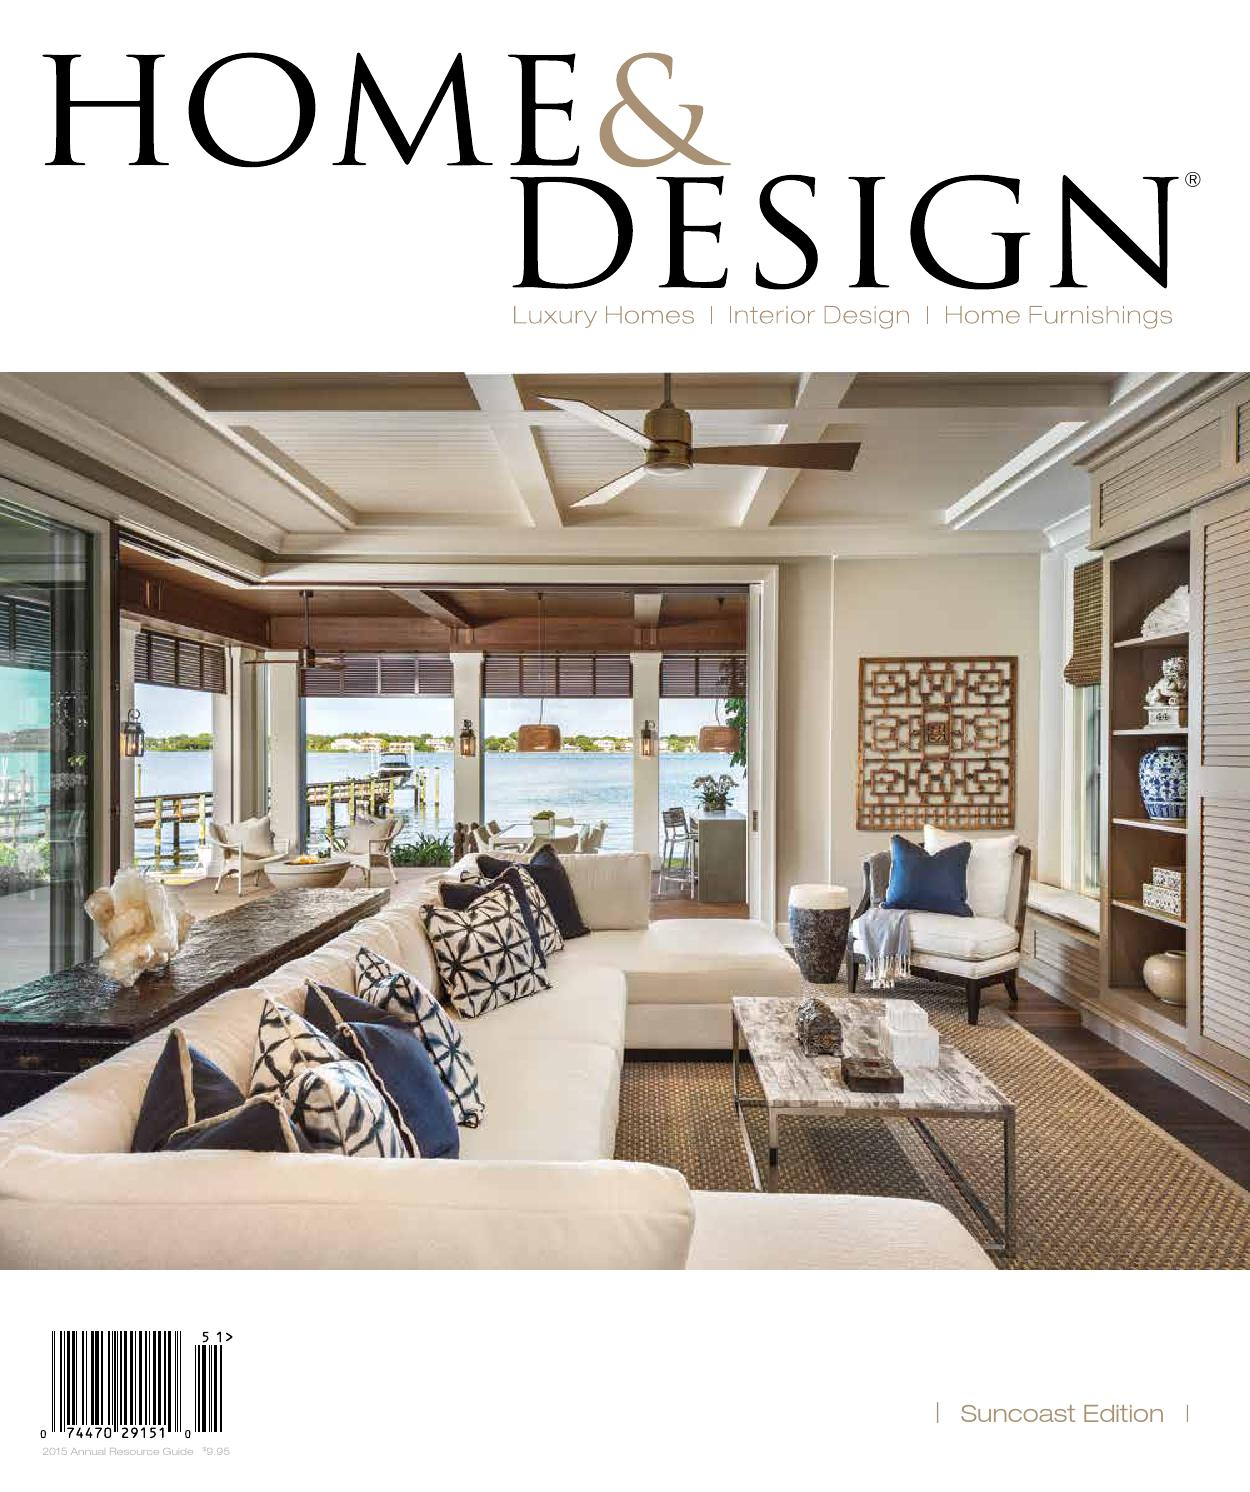 Home design magazine annual resource guide 2015 for Deco design magazine